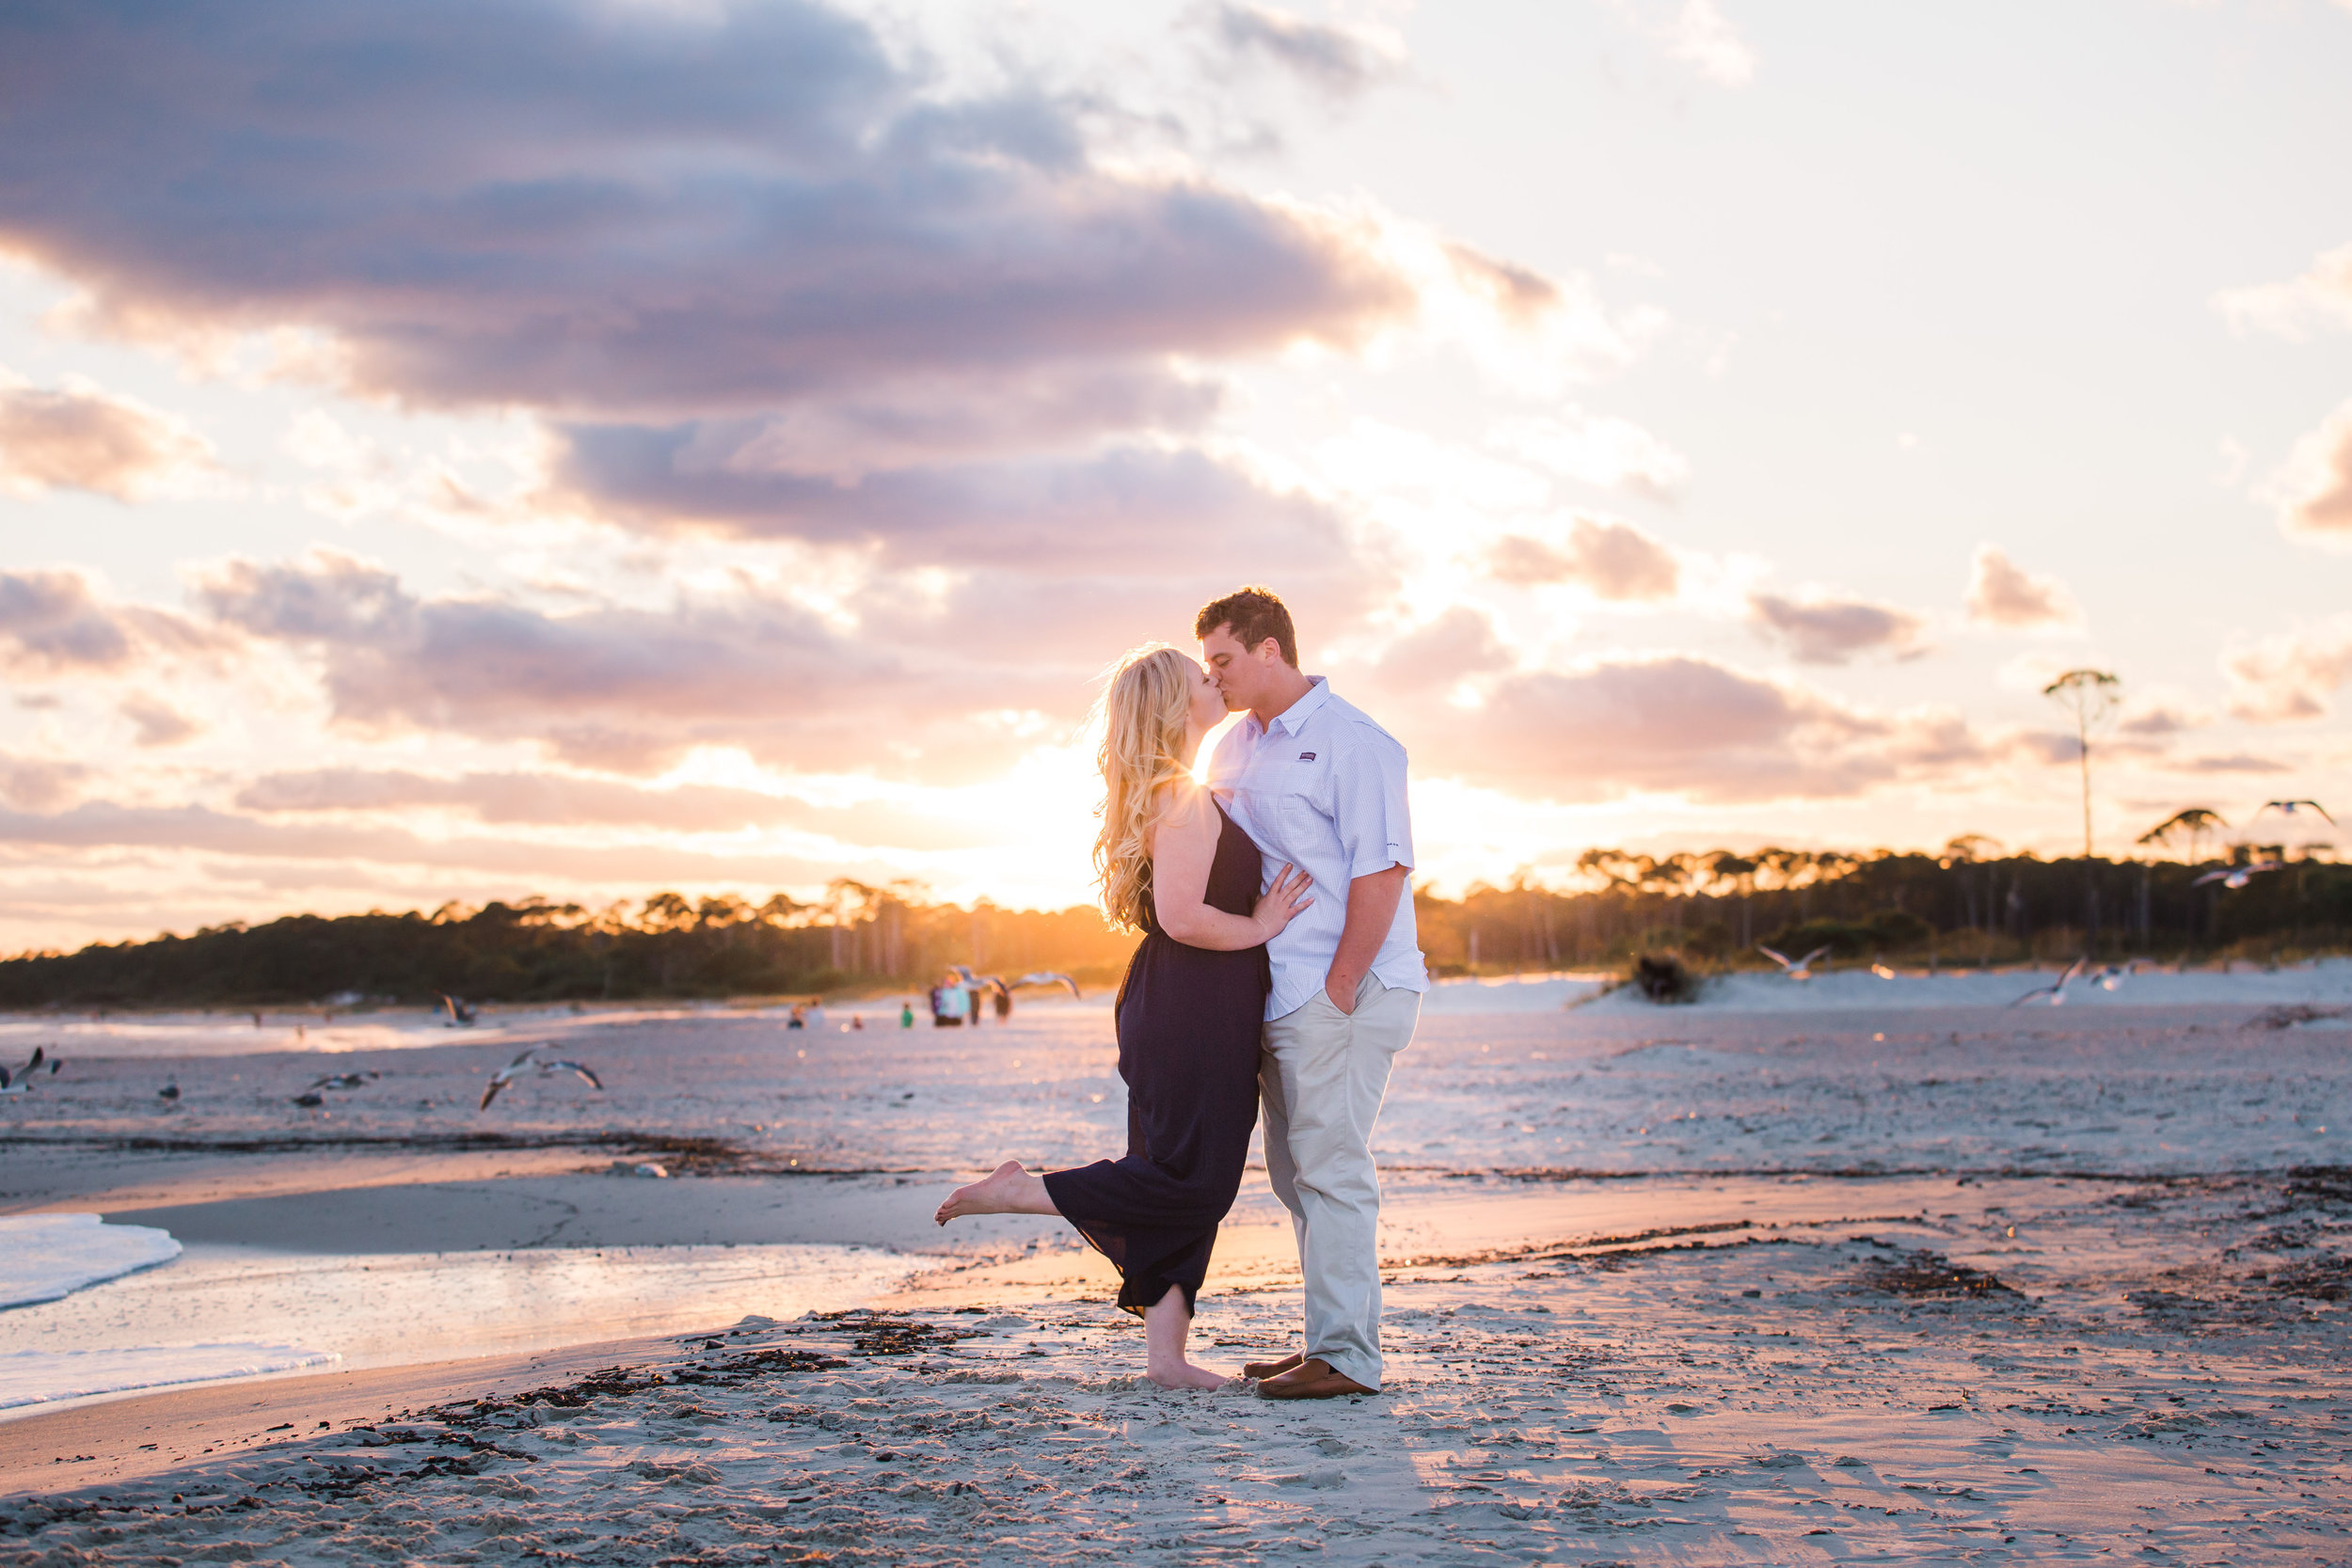 Mobile-Dauphin-Island-Fairhope-Engagement-Photo-Alabama-Florida-Wedding-Photographer-Shelby-Jacob-16.jpg